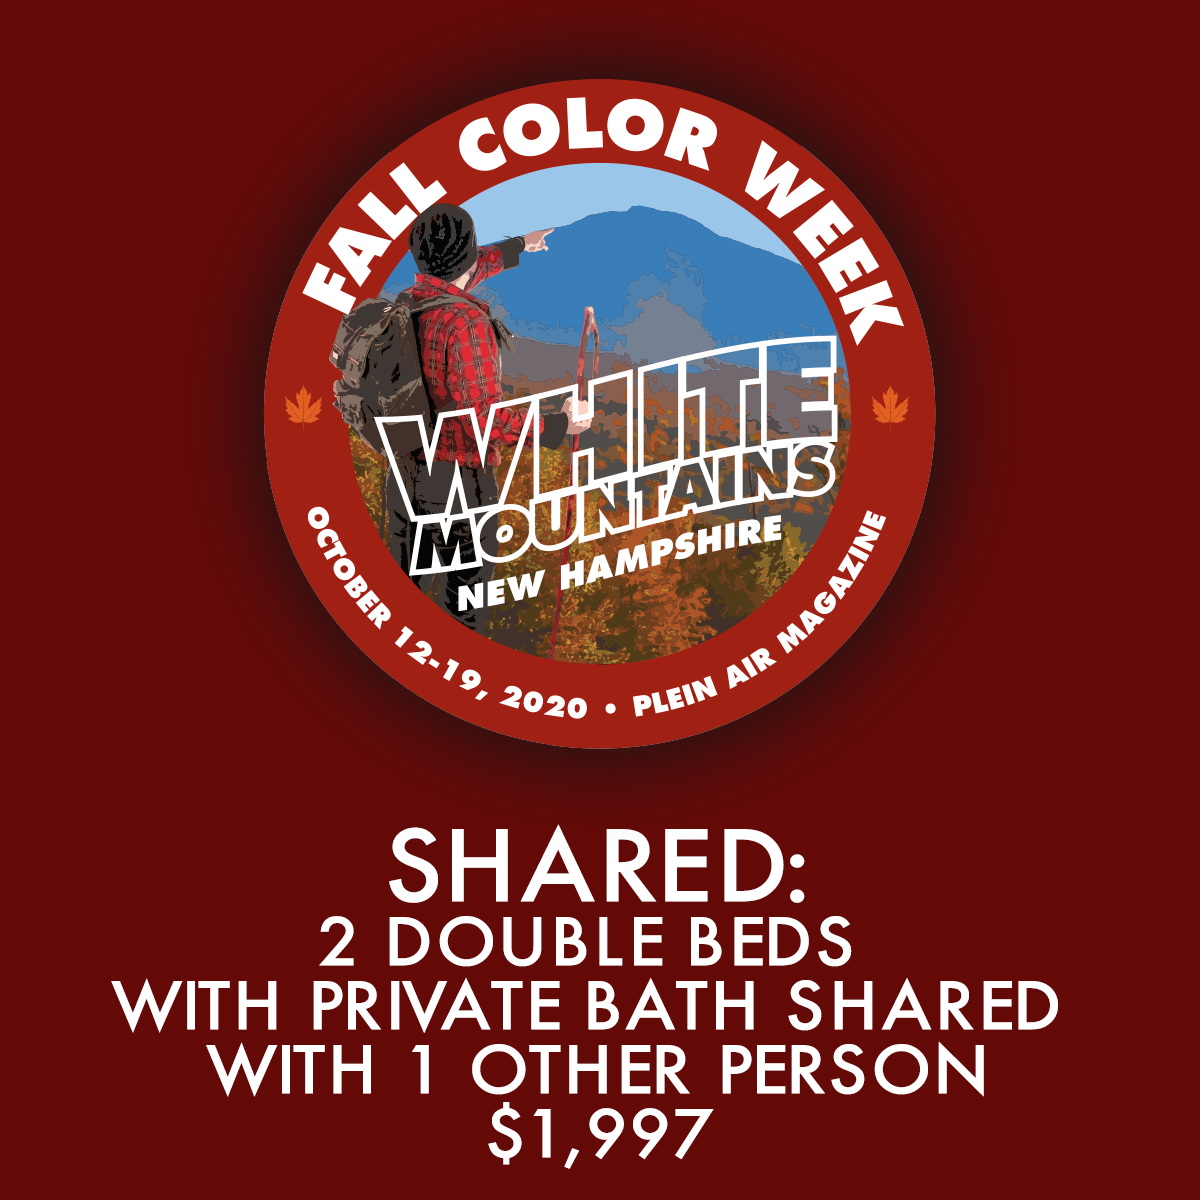 2020 Fall Color Week - Shared: 2 Double Beds with Private Bath Shared with 1 Other Person - FCW19 Discount